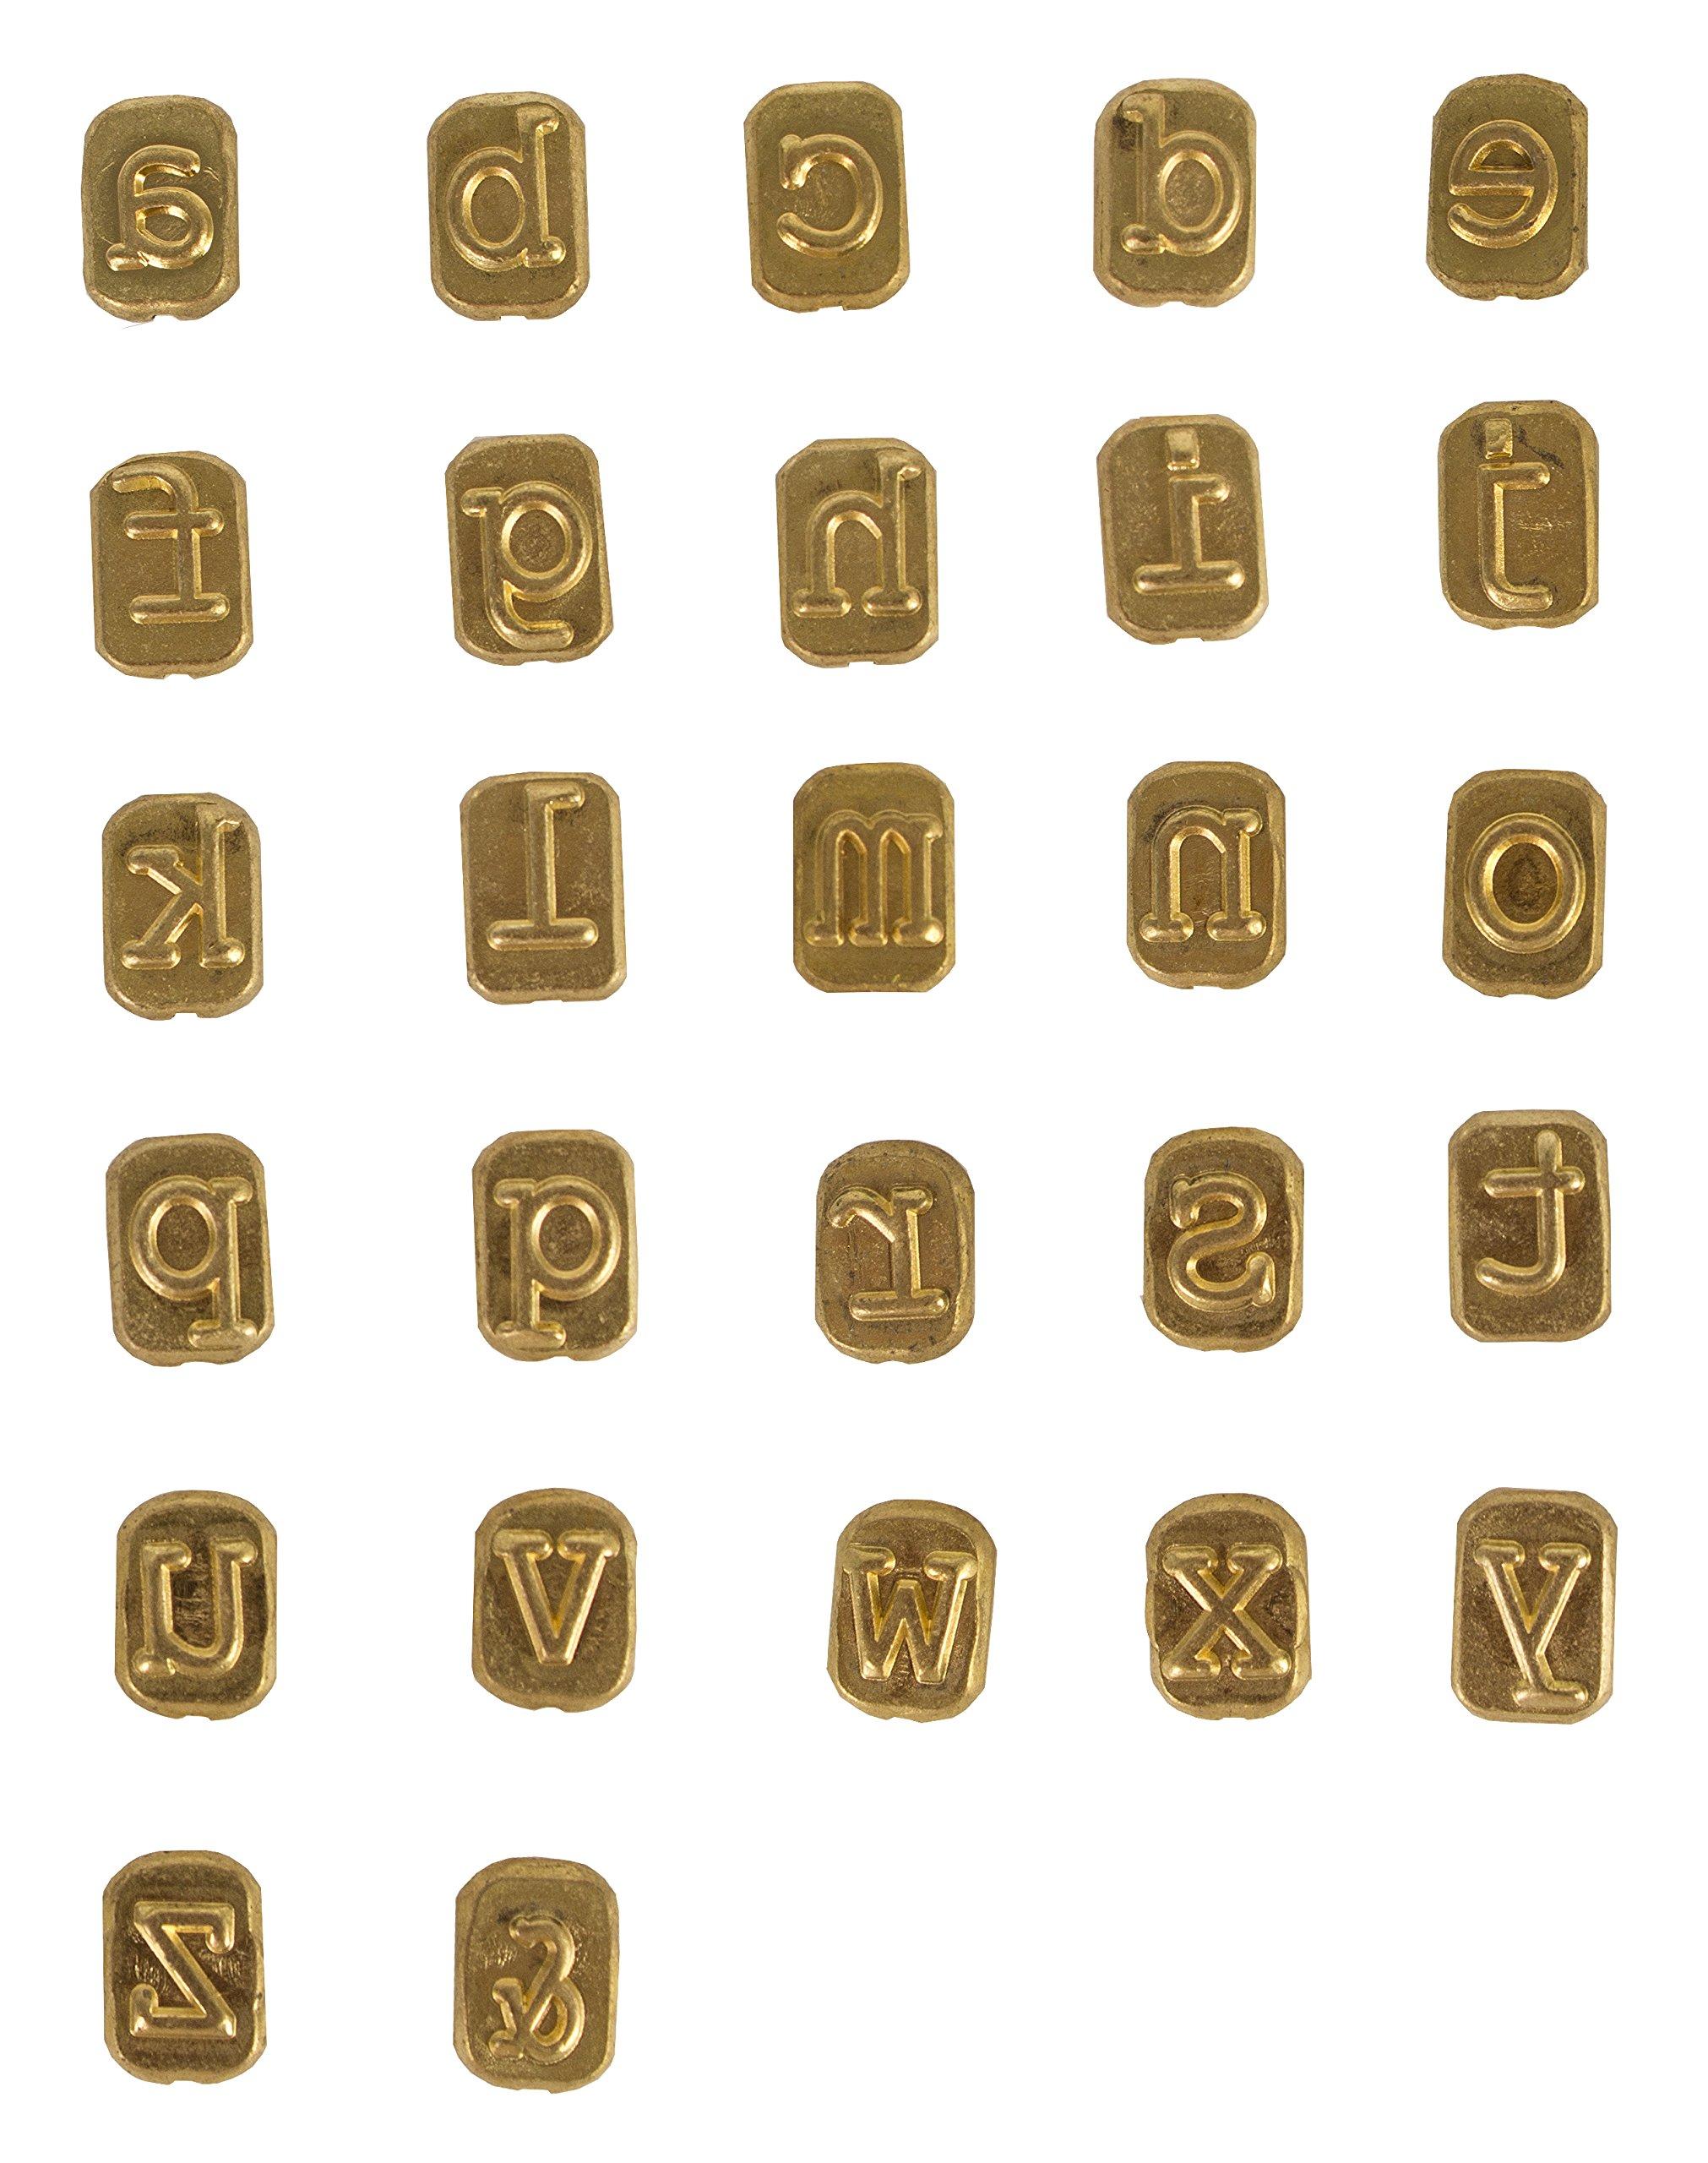 Walnut Hollow Mini Hot Stamps Lowercase Alphabet Branding & Personalization Set for Wood, Leather & Other Surfaces